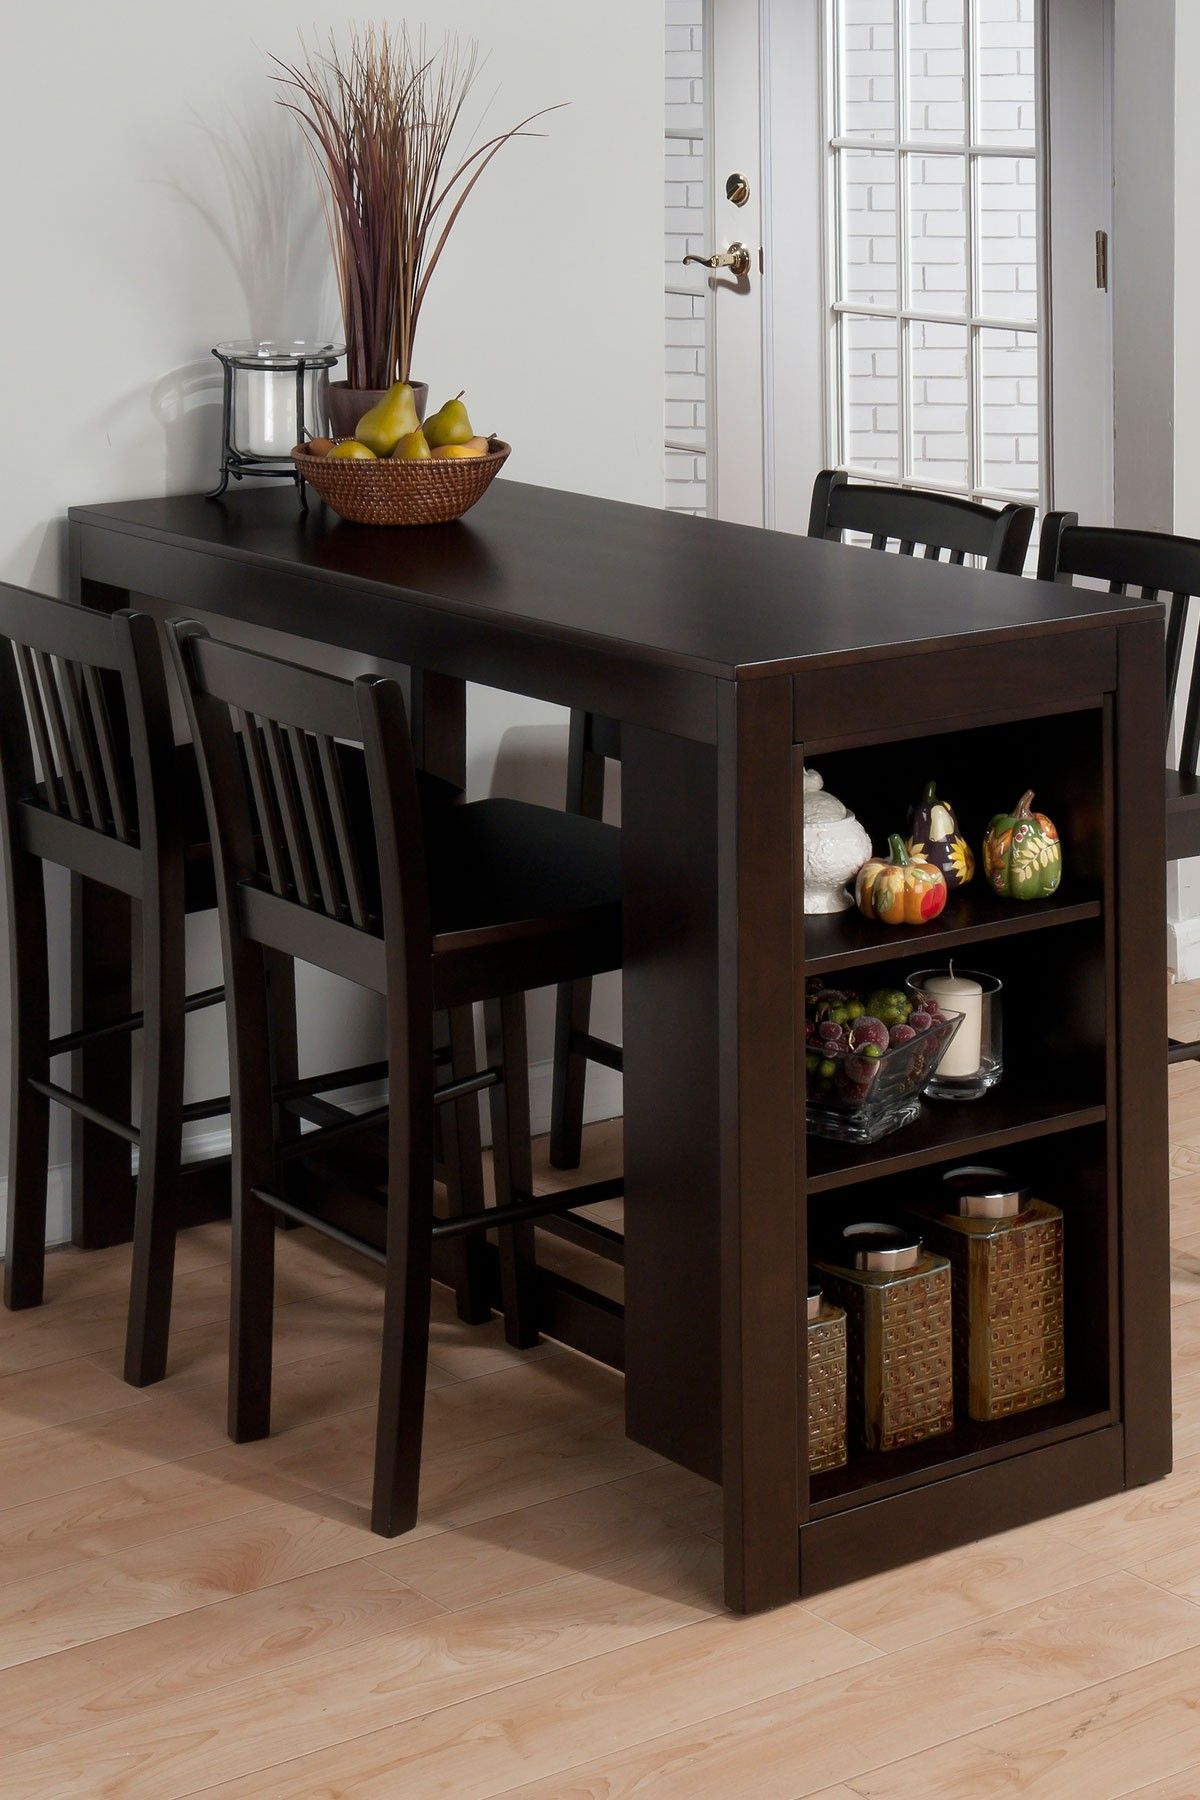 Maryland Merlot Counterheight Table Great Solution For A Thin Bar Area That S Portable Could Turn It So Not Taking Up Much Room When You Don T